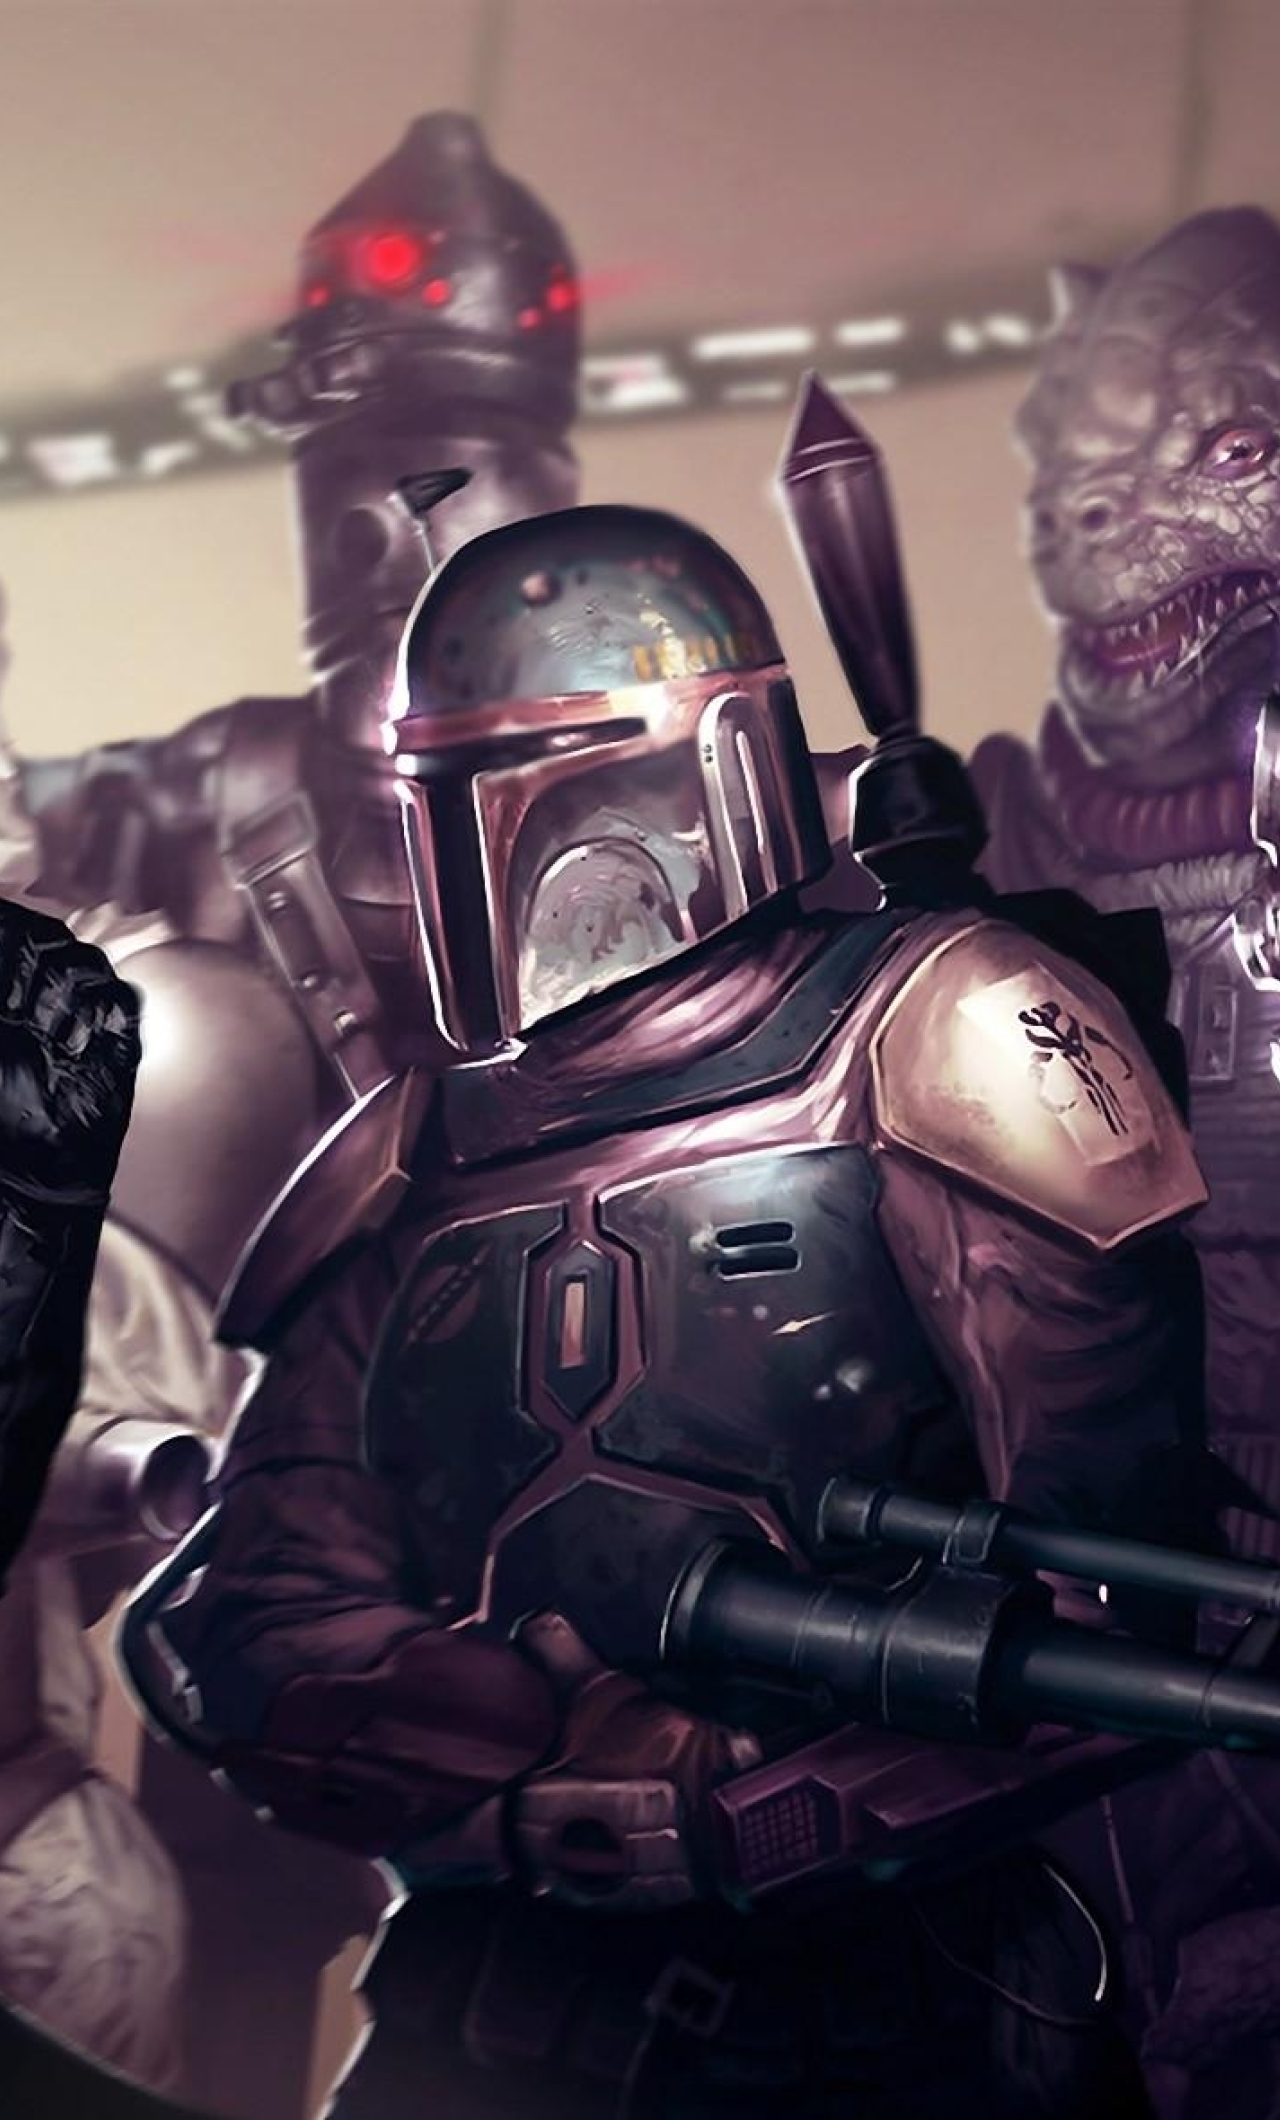 Star Wars Darth Vader Boba Fett Full HD Wallpaper